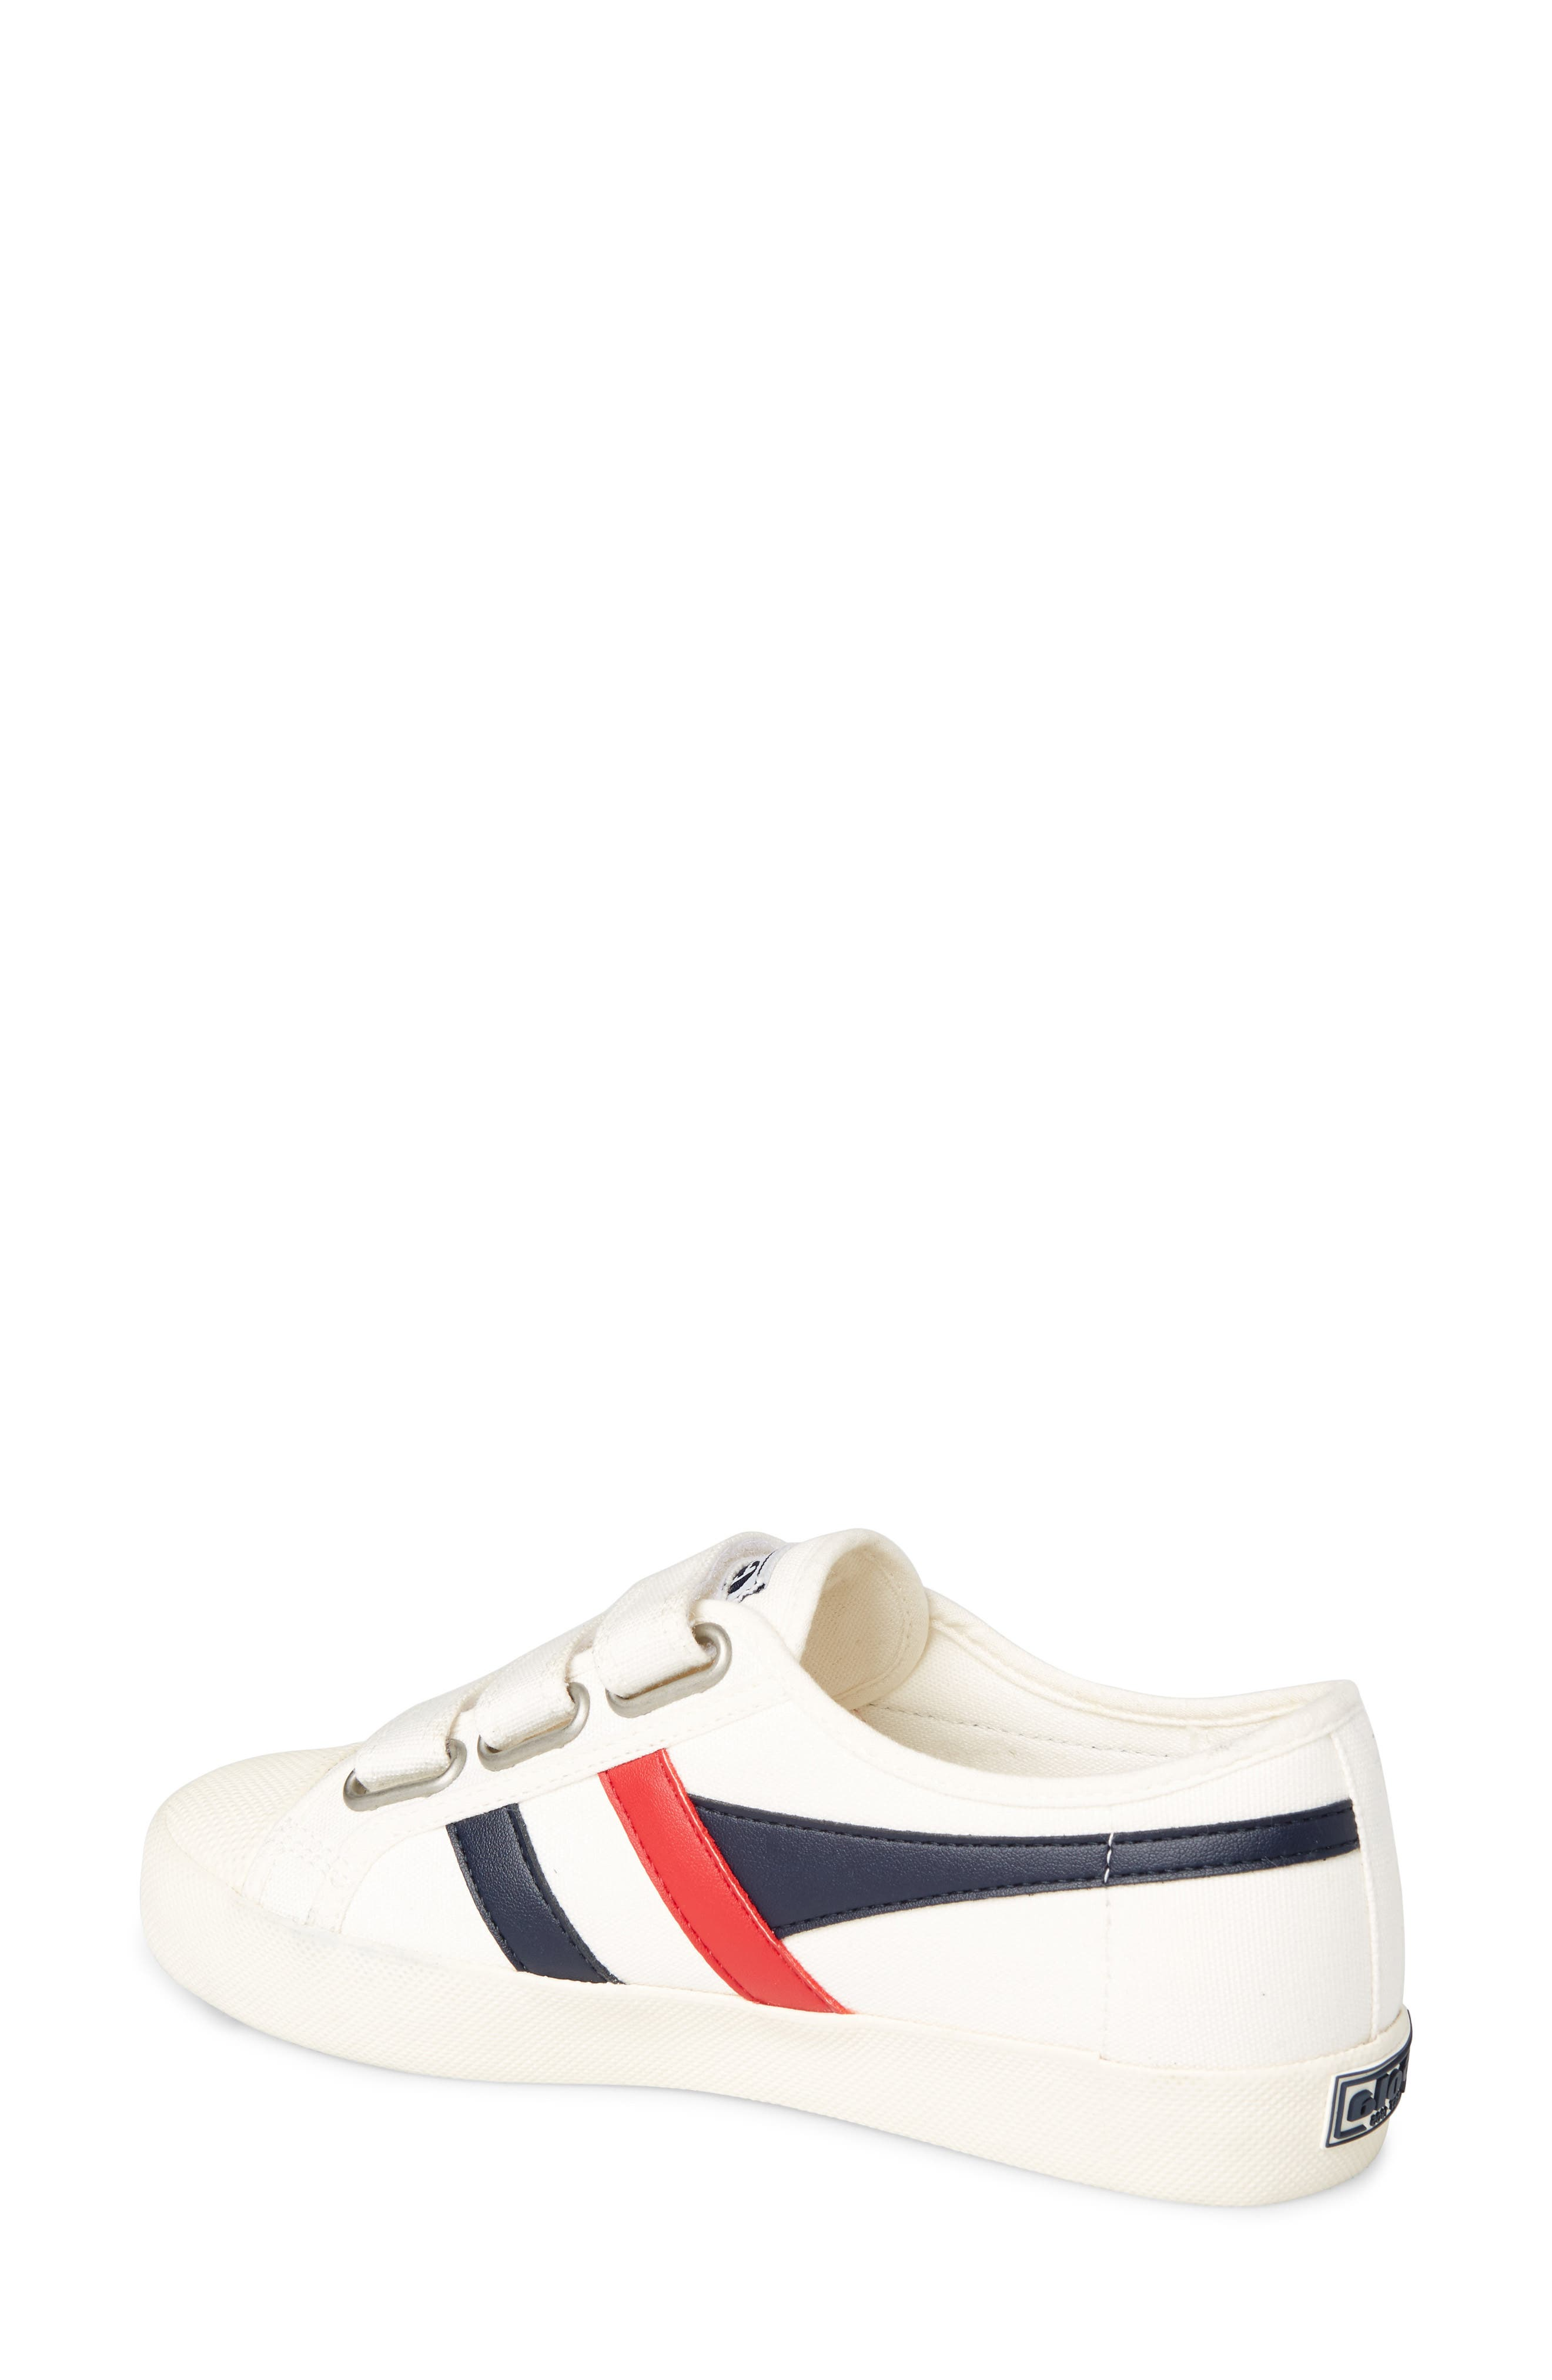 Coaster Low Top Sneaker,                             Alternate thumbnail 2, color,                             OFF WHITE/ NAVY/ RED